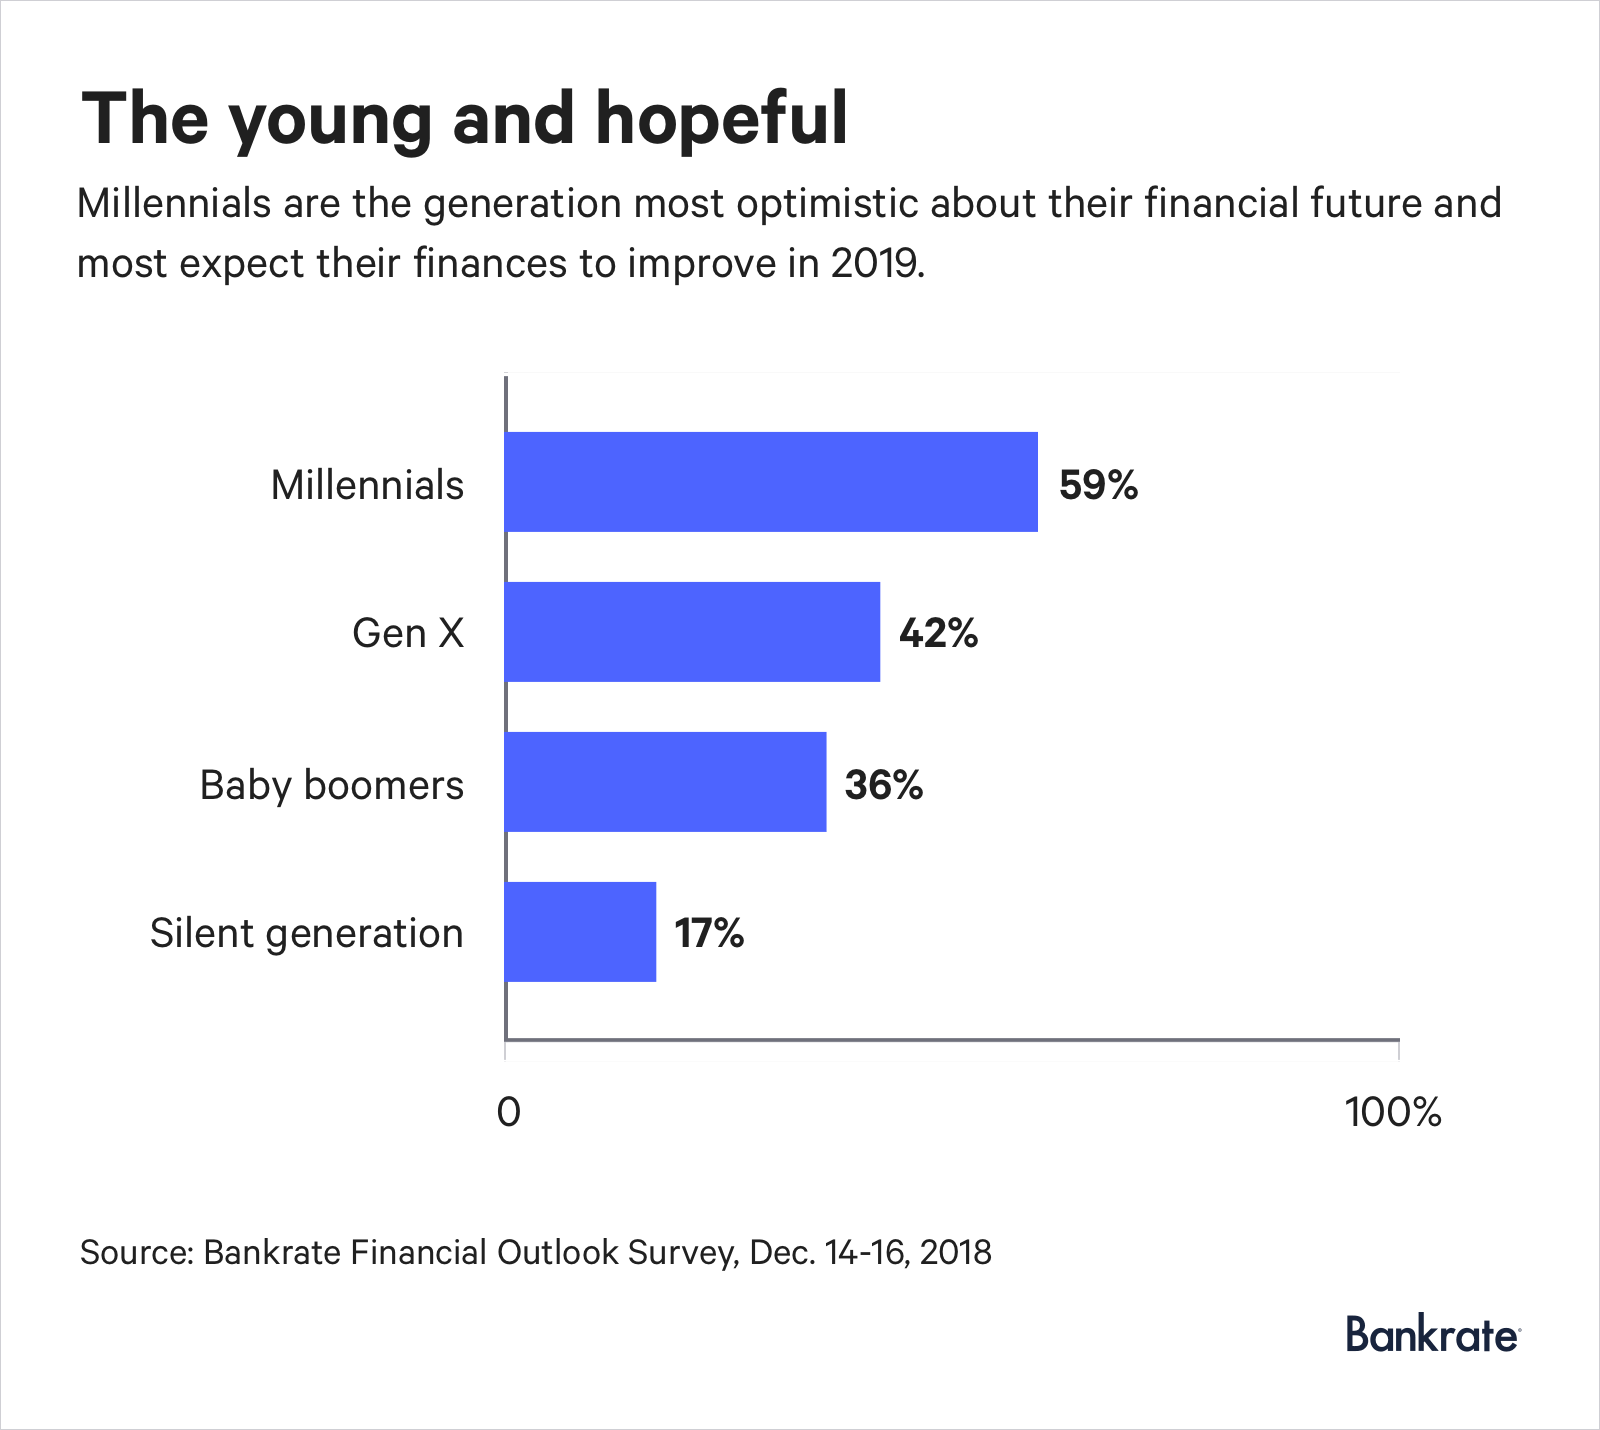 Graph: 59% of millennials are optimistic about their financial future in 2019